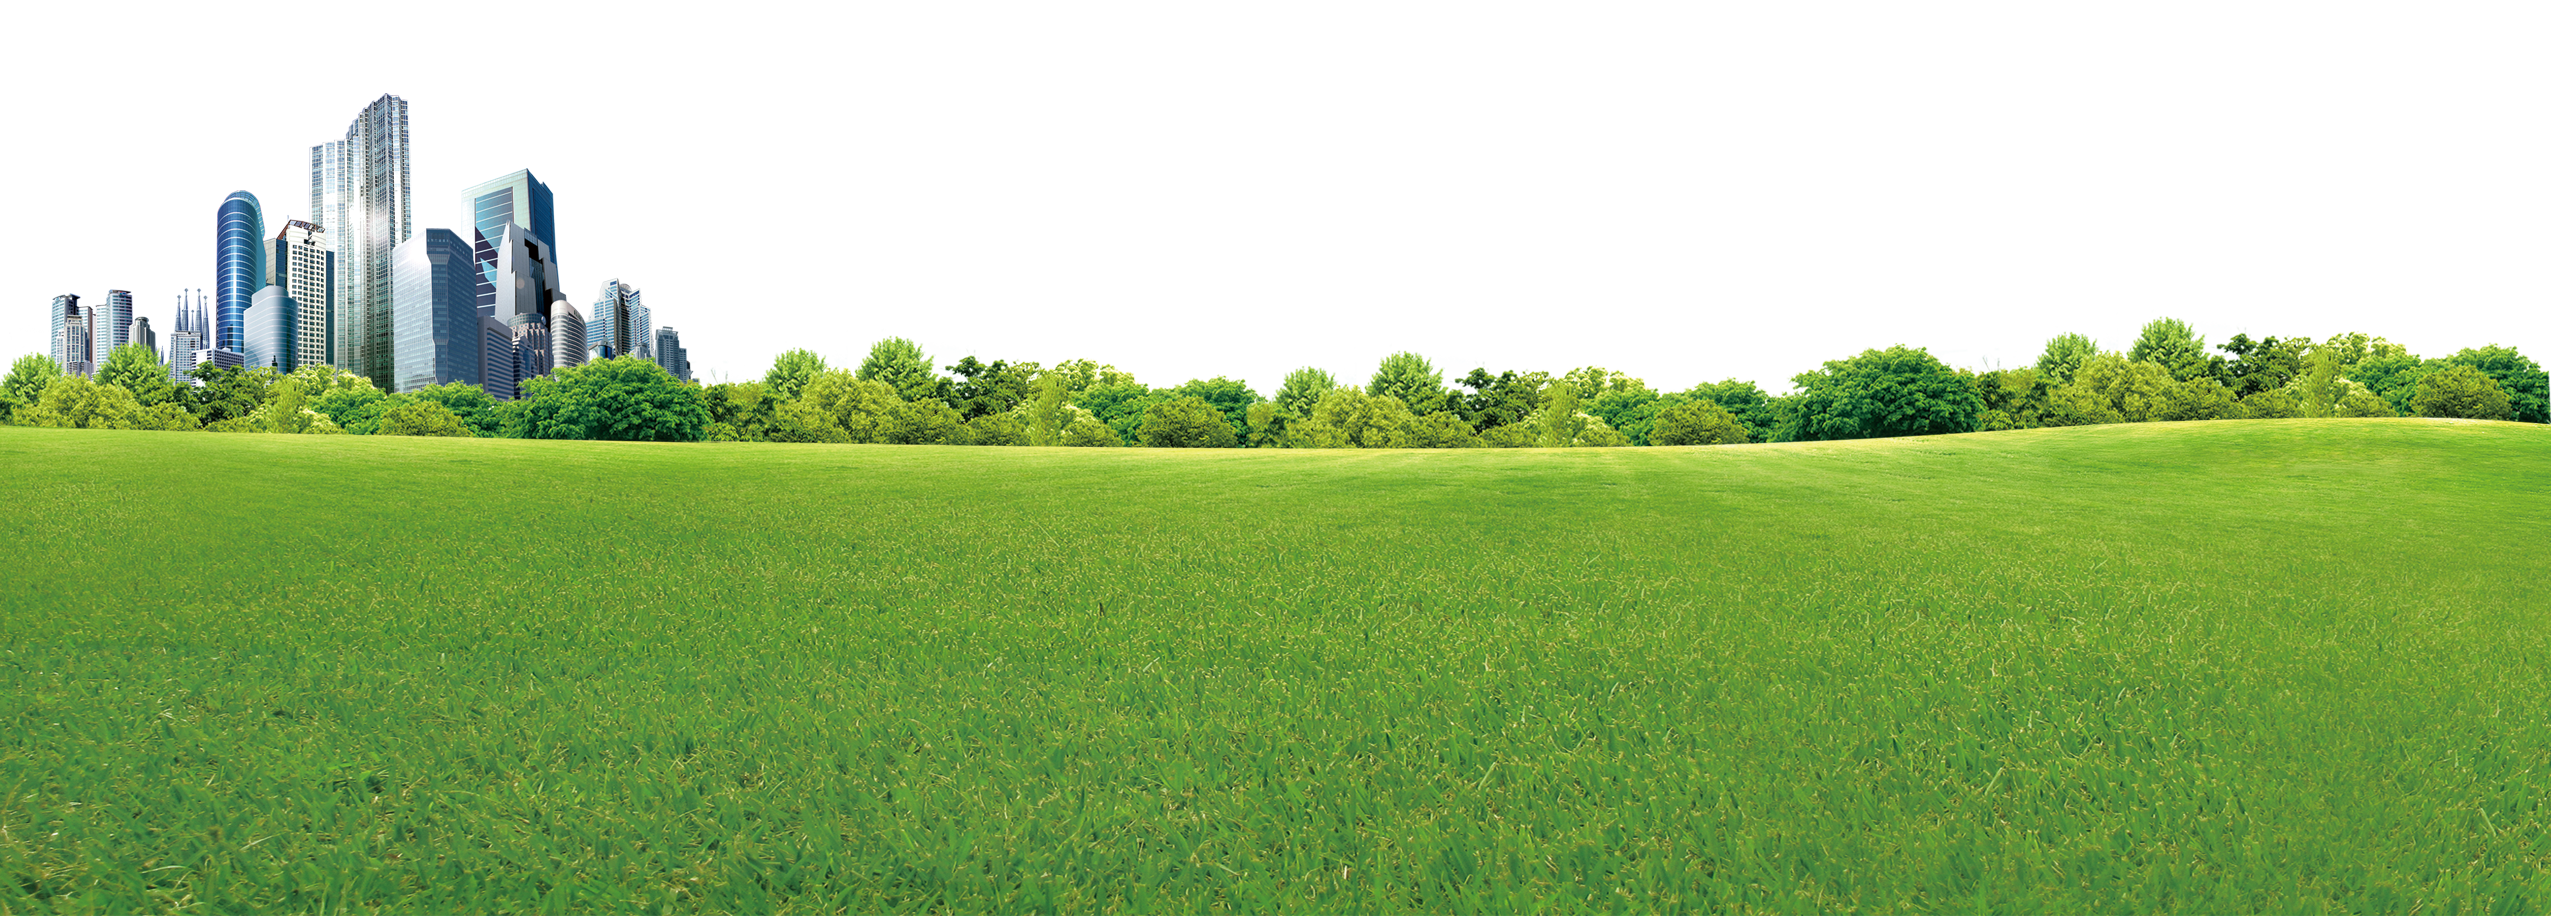 Land vector green field. Crop biome grassland rural